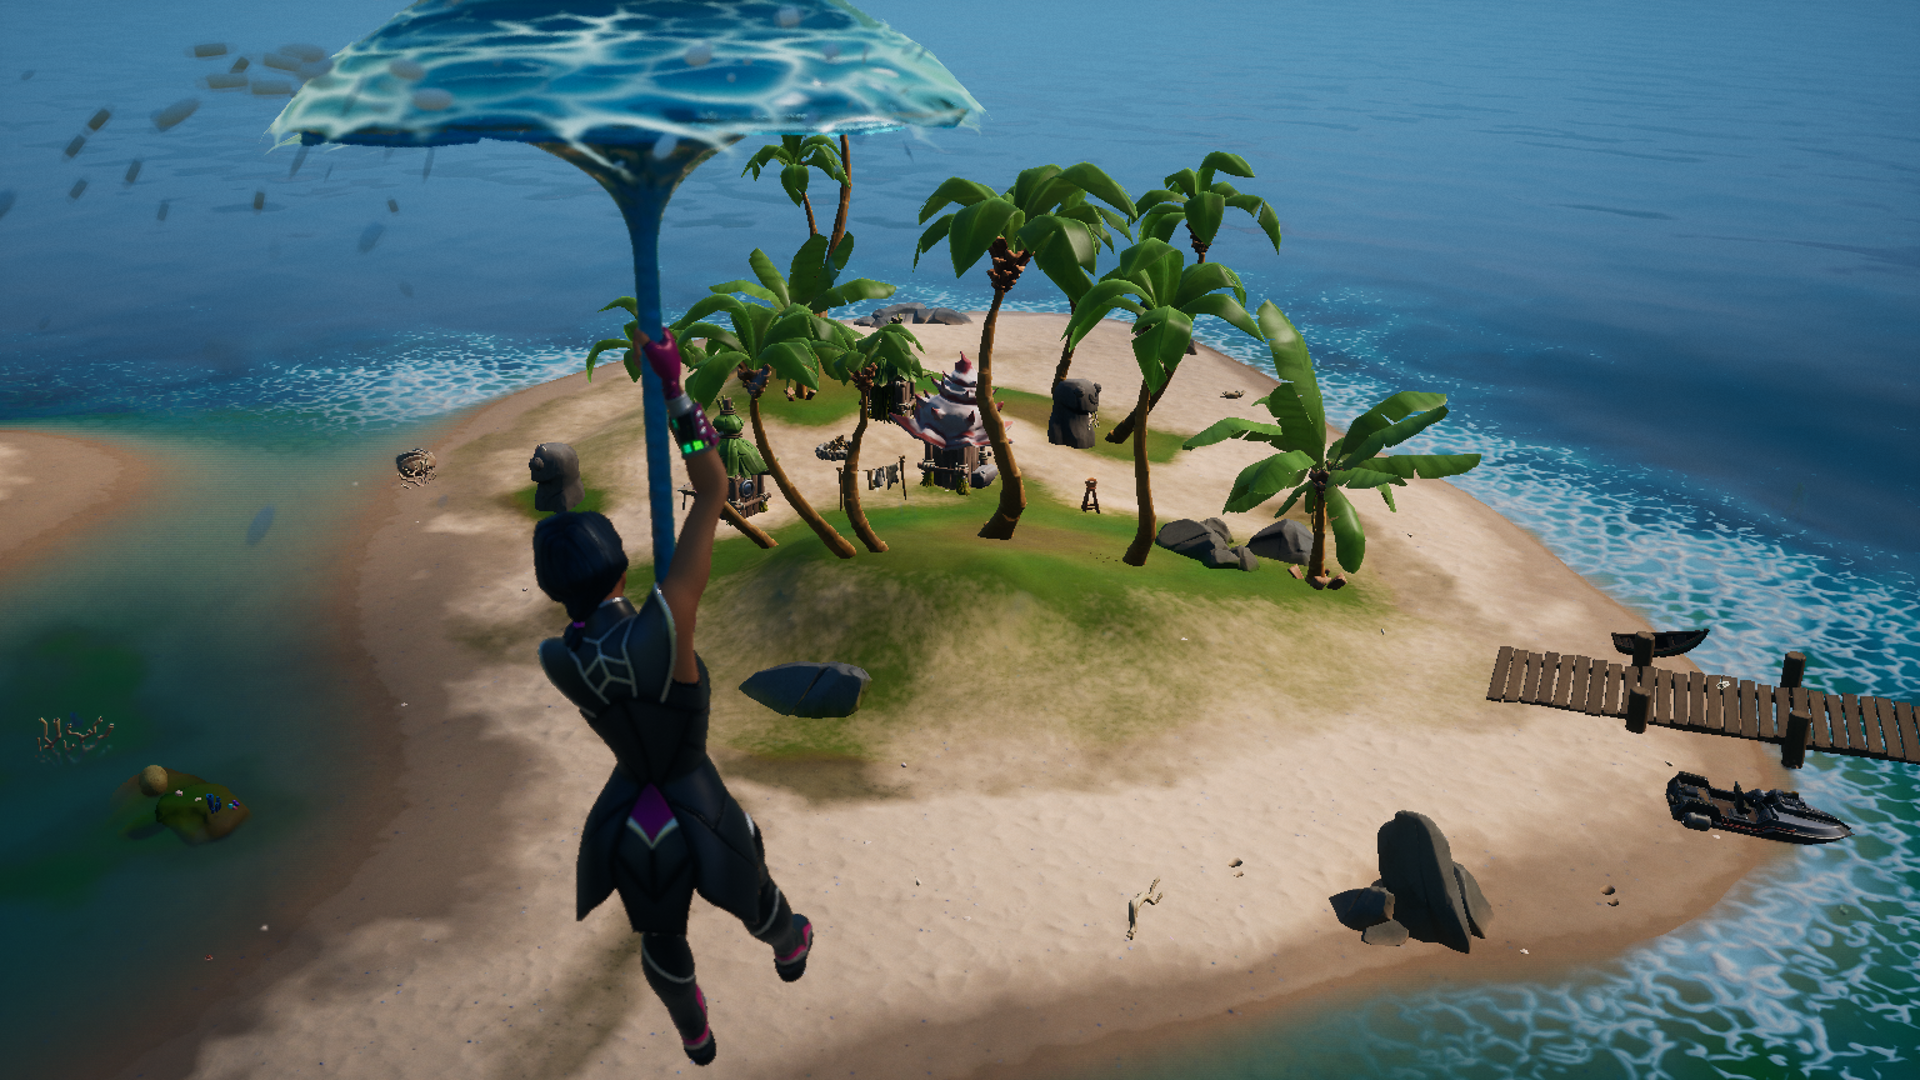 A Fortnite player in Chapter 2 season 1 gliding toward Coral Cove